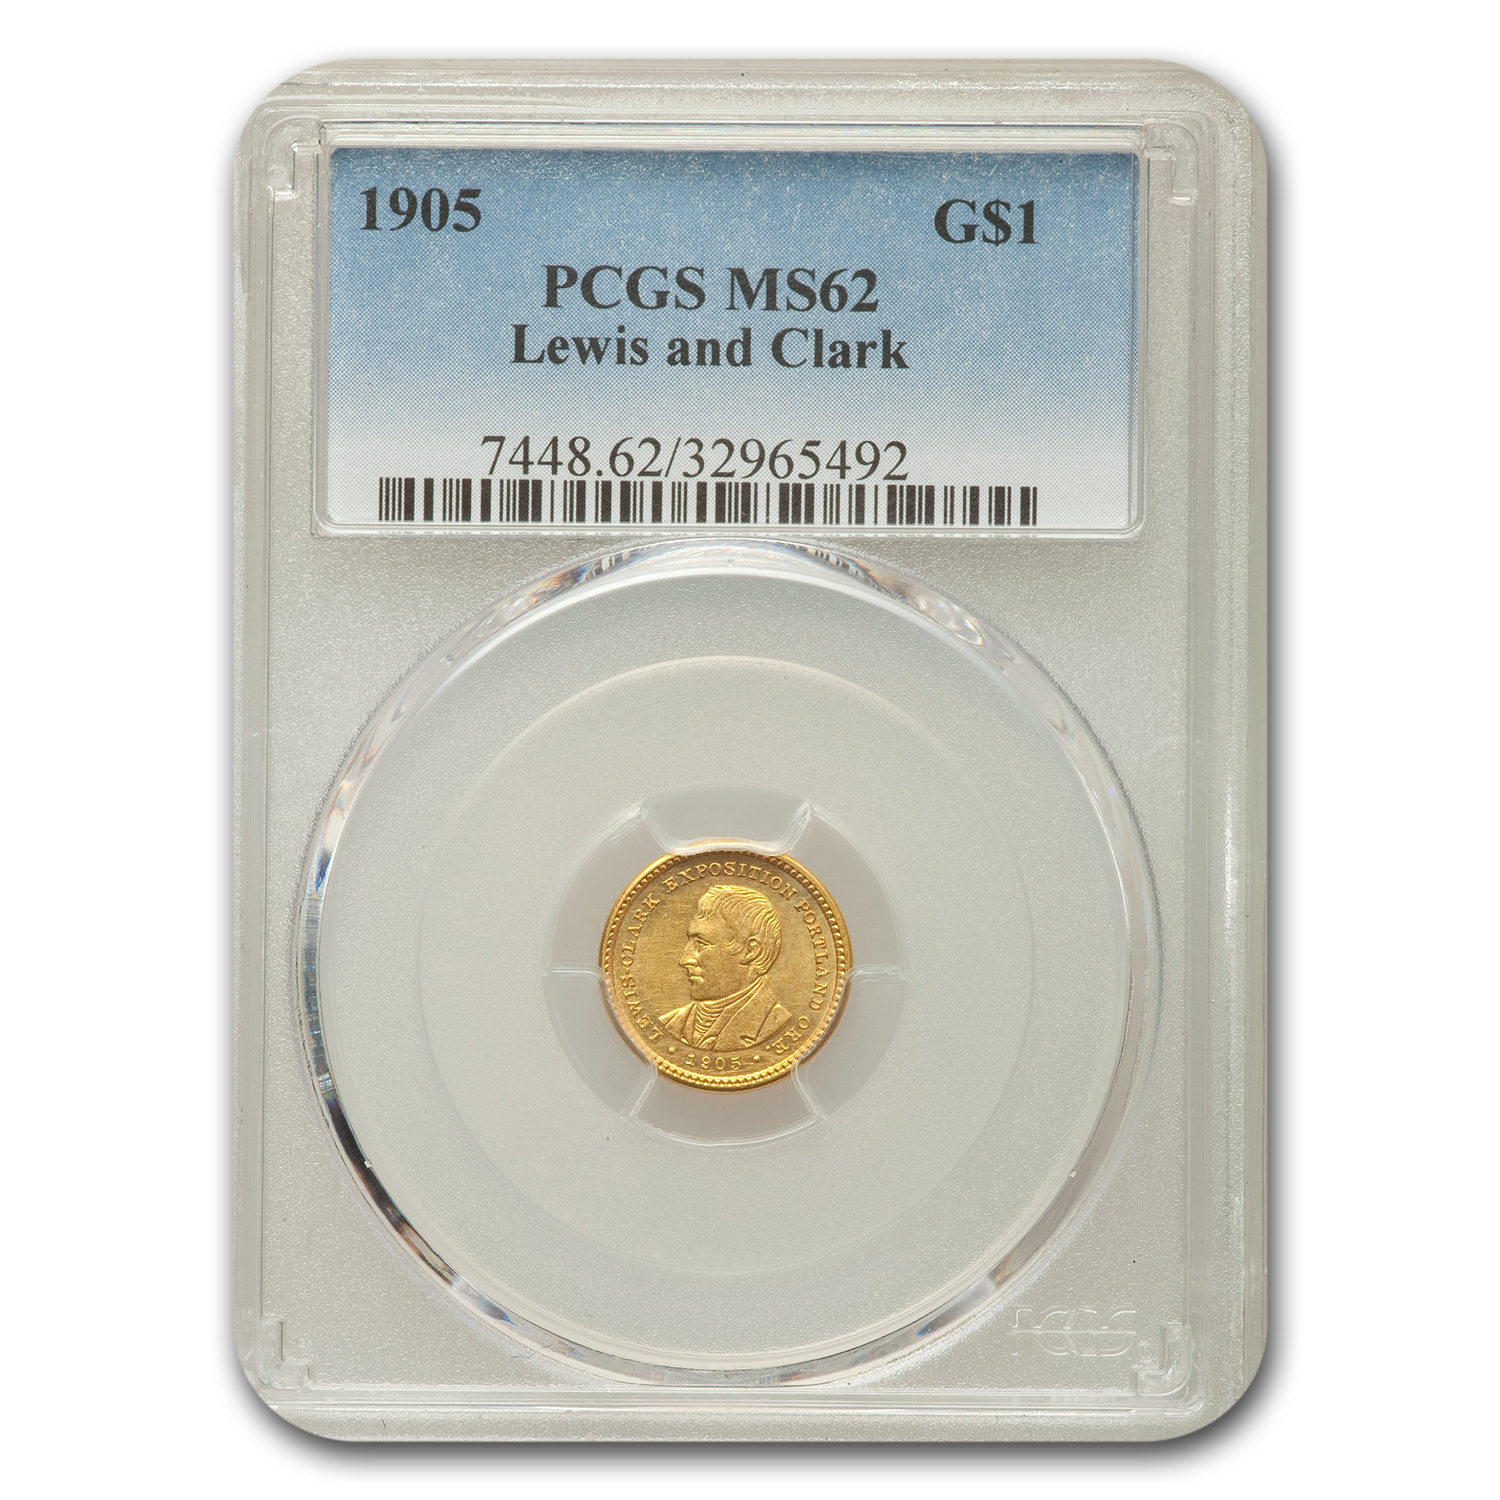 1905 Gold $1.00 Lewis and Clark MS-62 PCGS